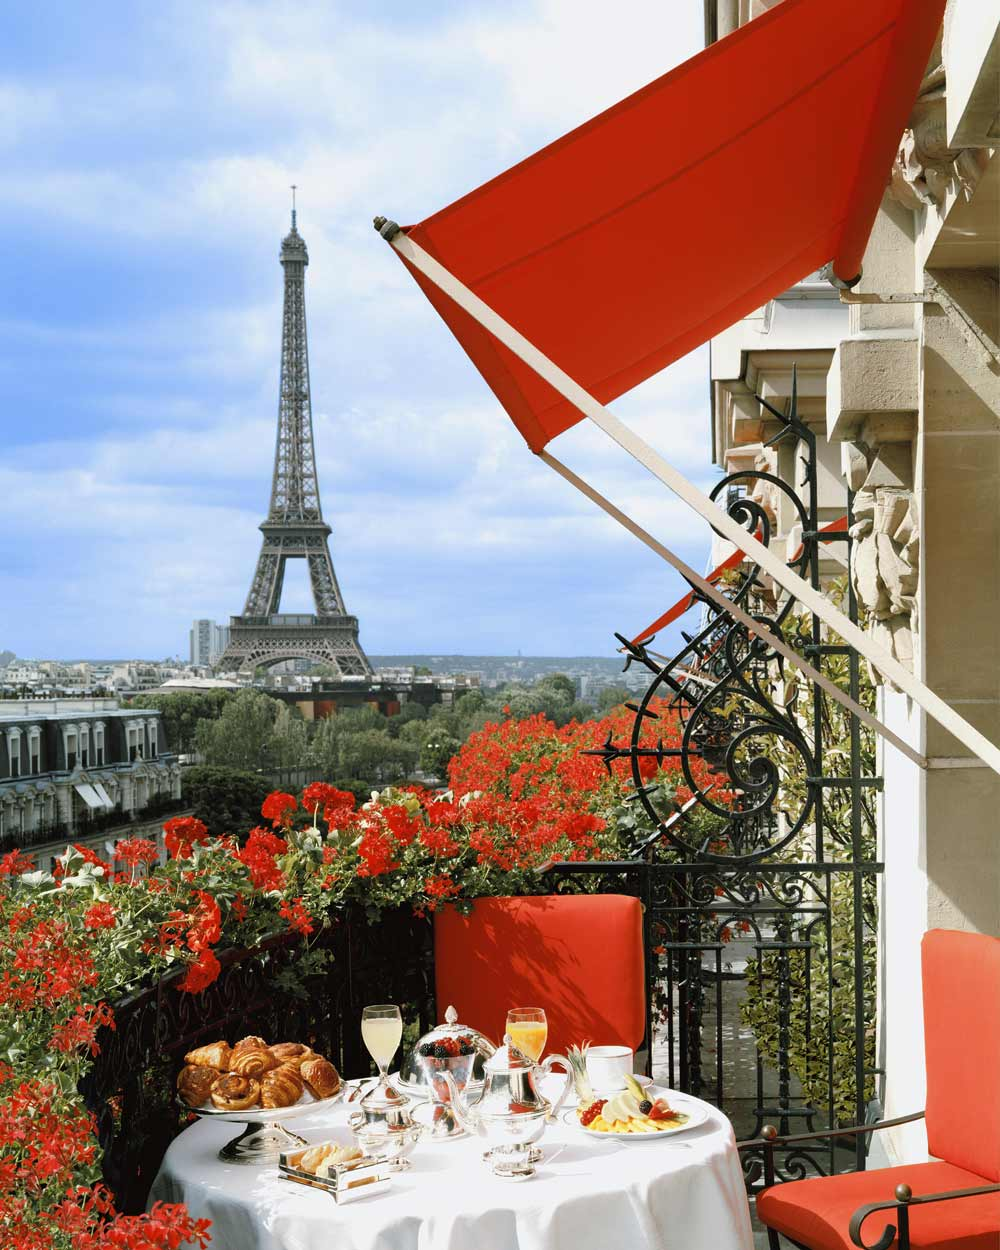 Forum on this topic: HOT SPOT: Hôtel Plaza Athénée, Paris, hot-spot-h-tel-plaza-ath-n-e-paris/